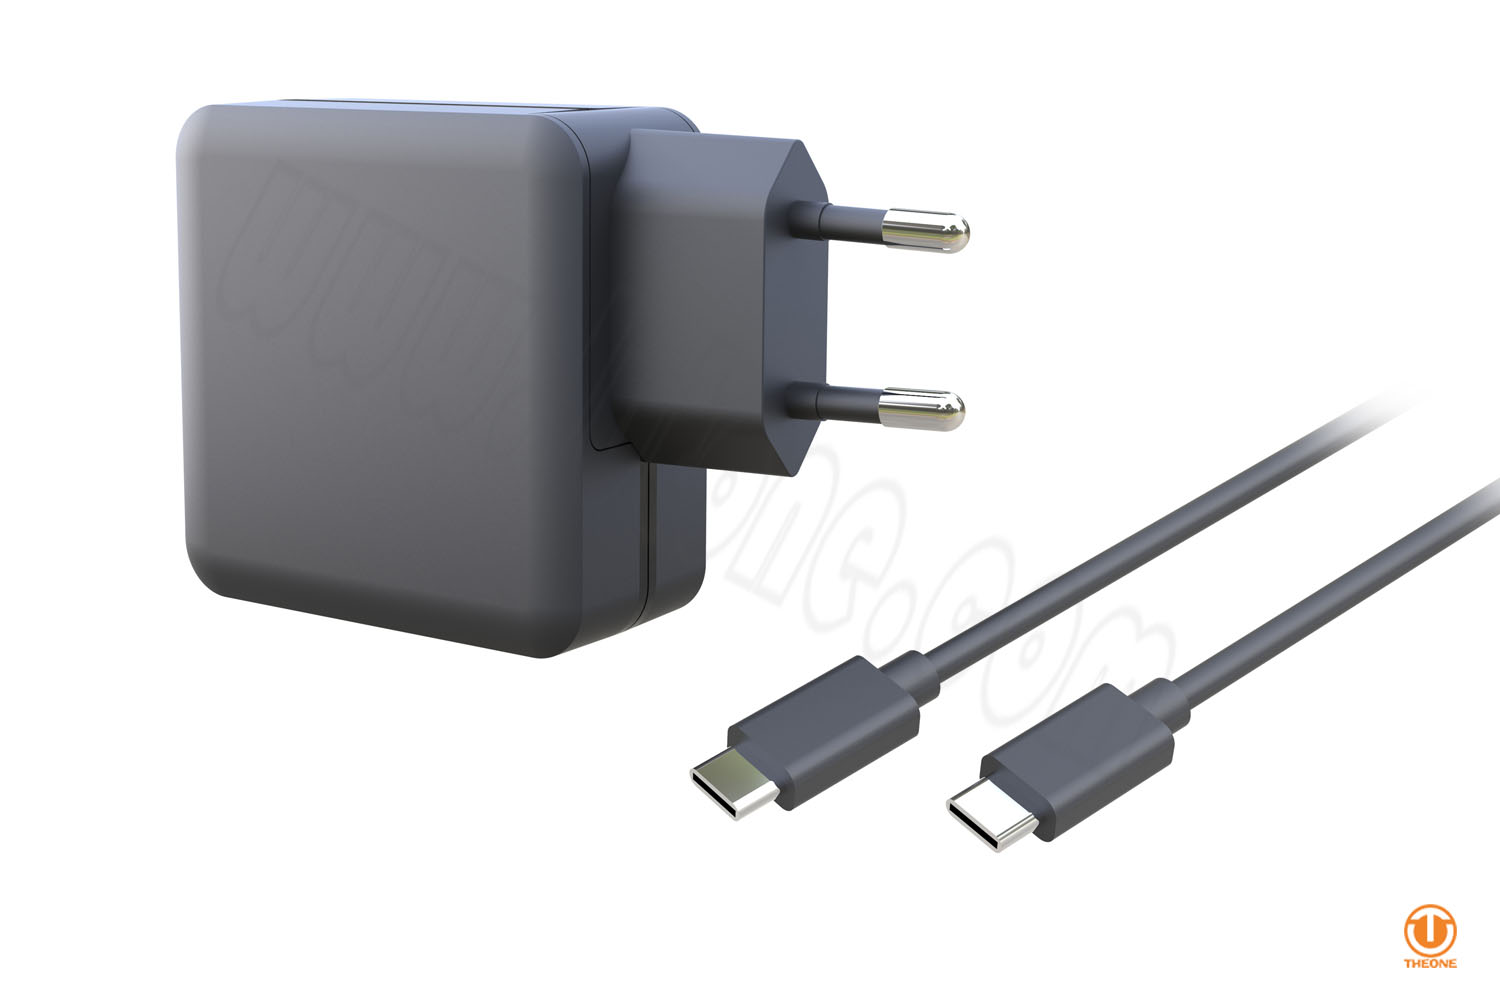 tp301c-3 typec charger